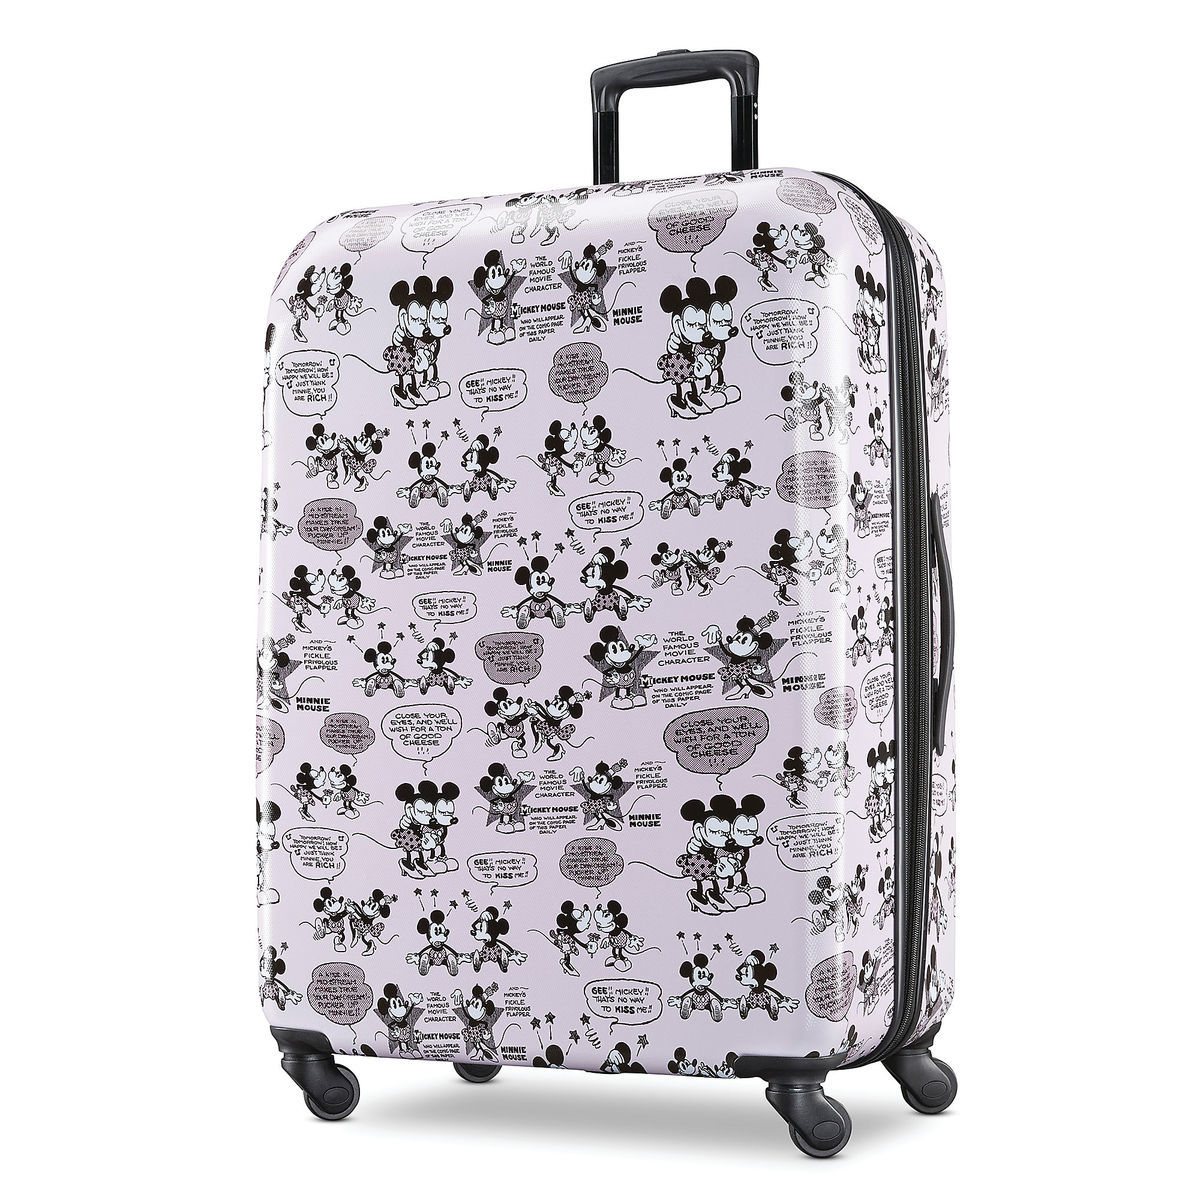 Disney Luggage for Your Summer Vacation 4